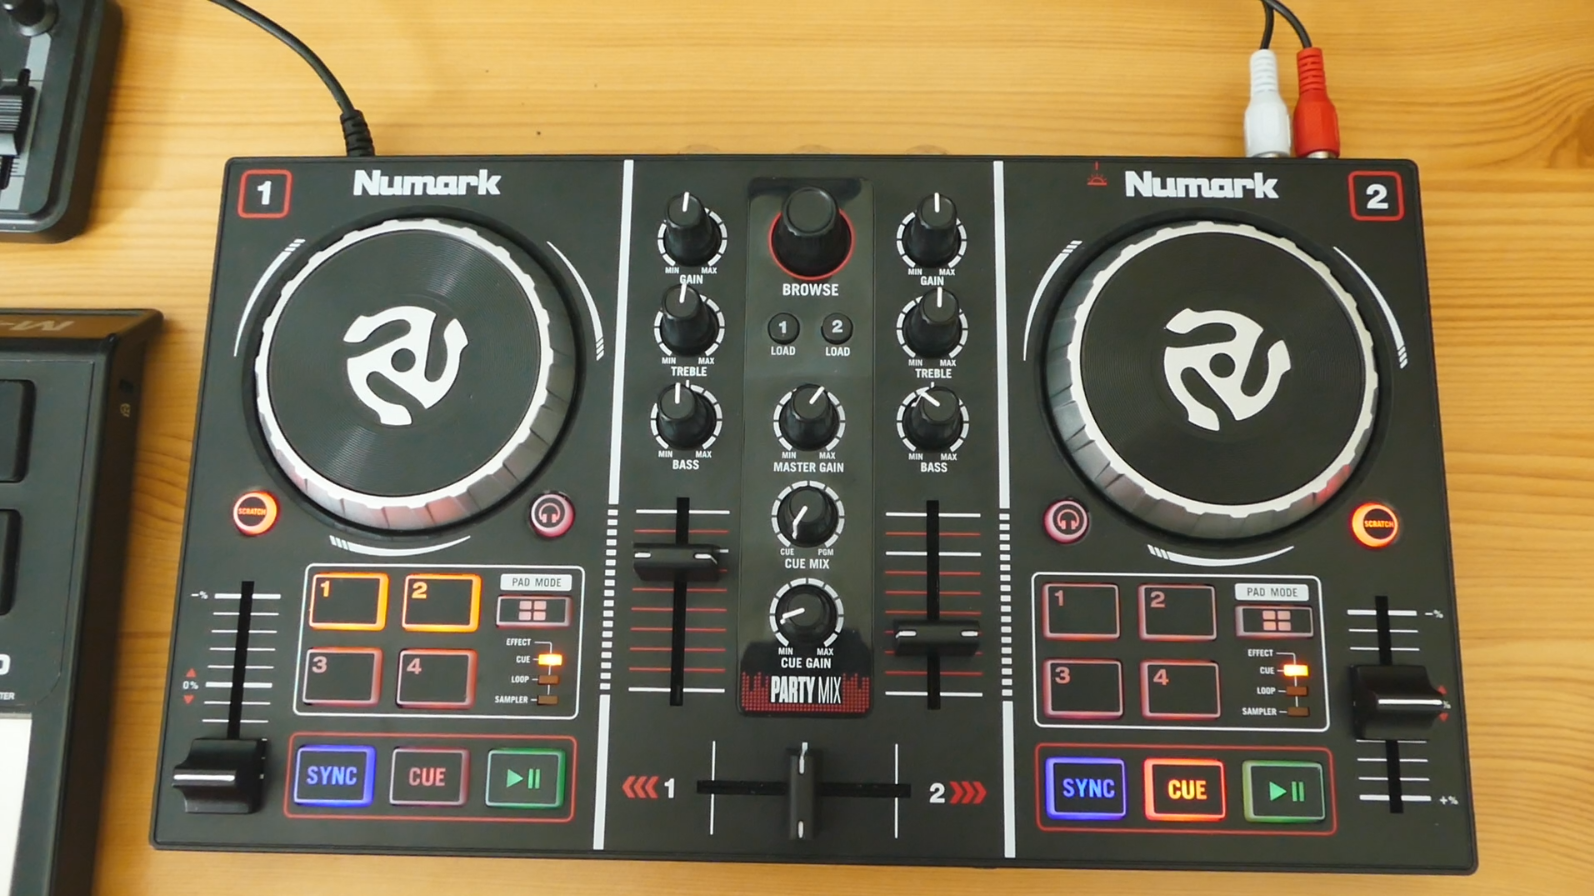 test Platine dj Djing débuter image Numark Party Mix